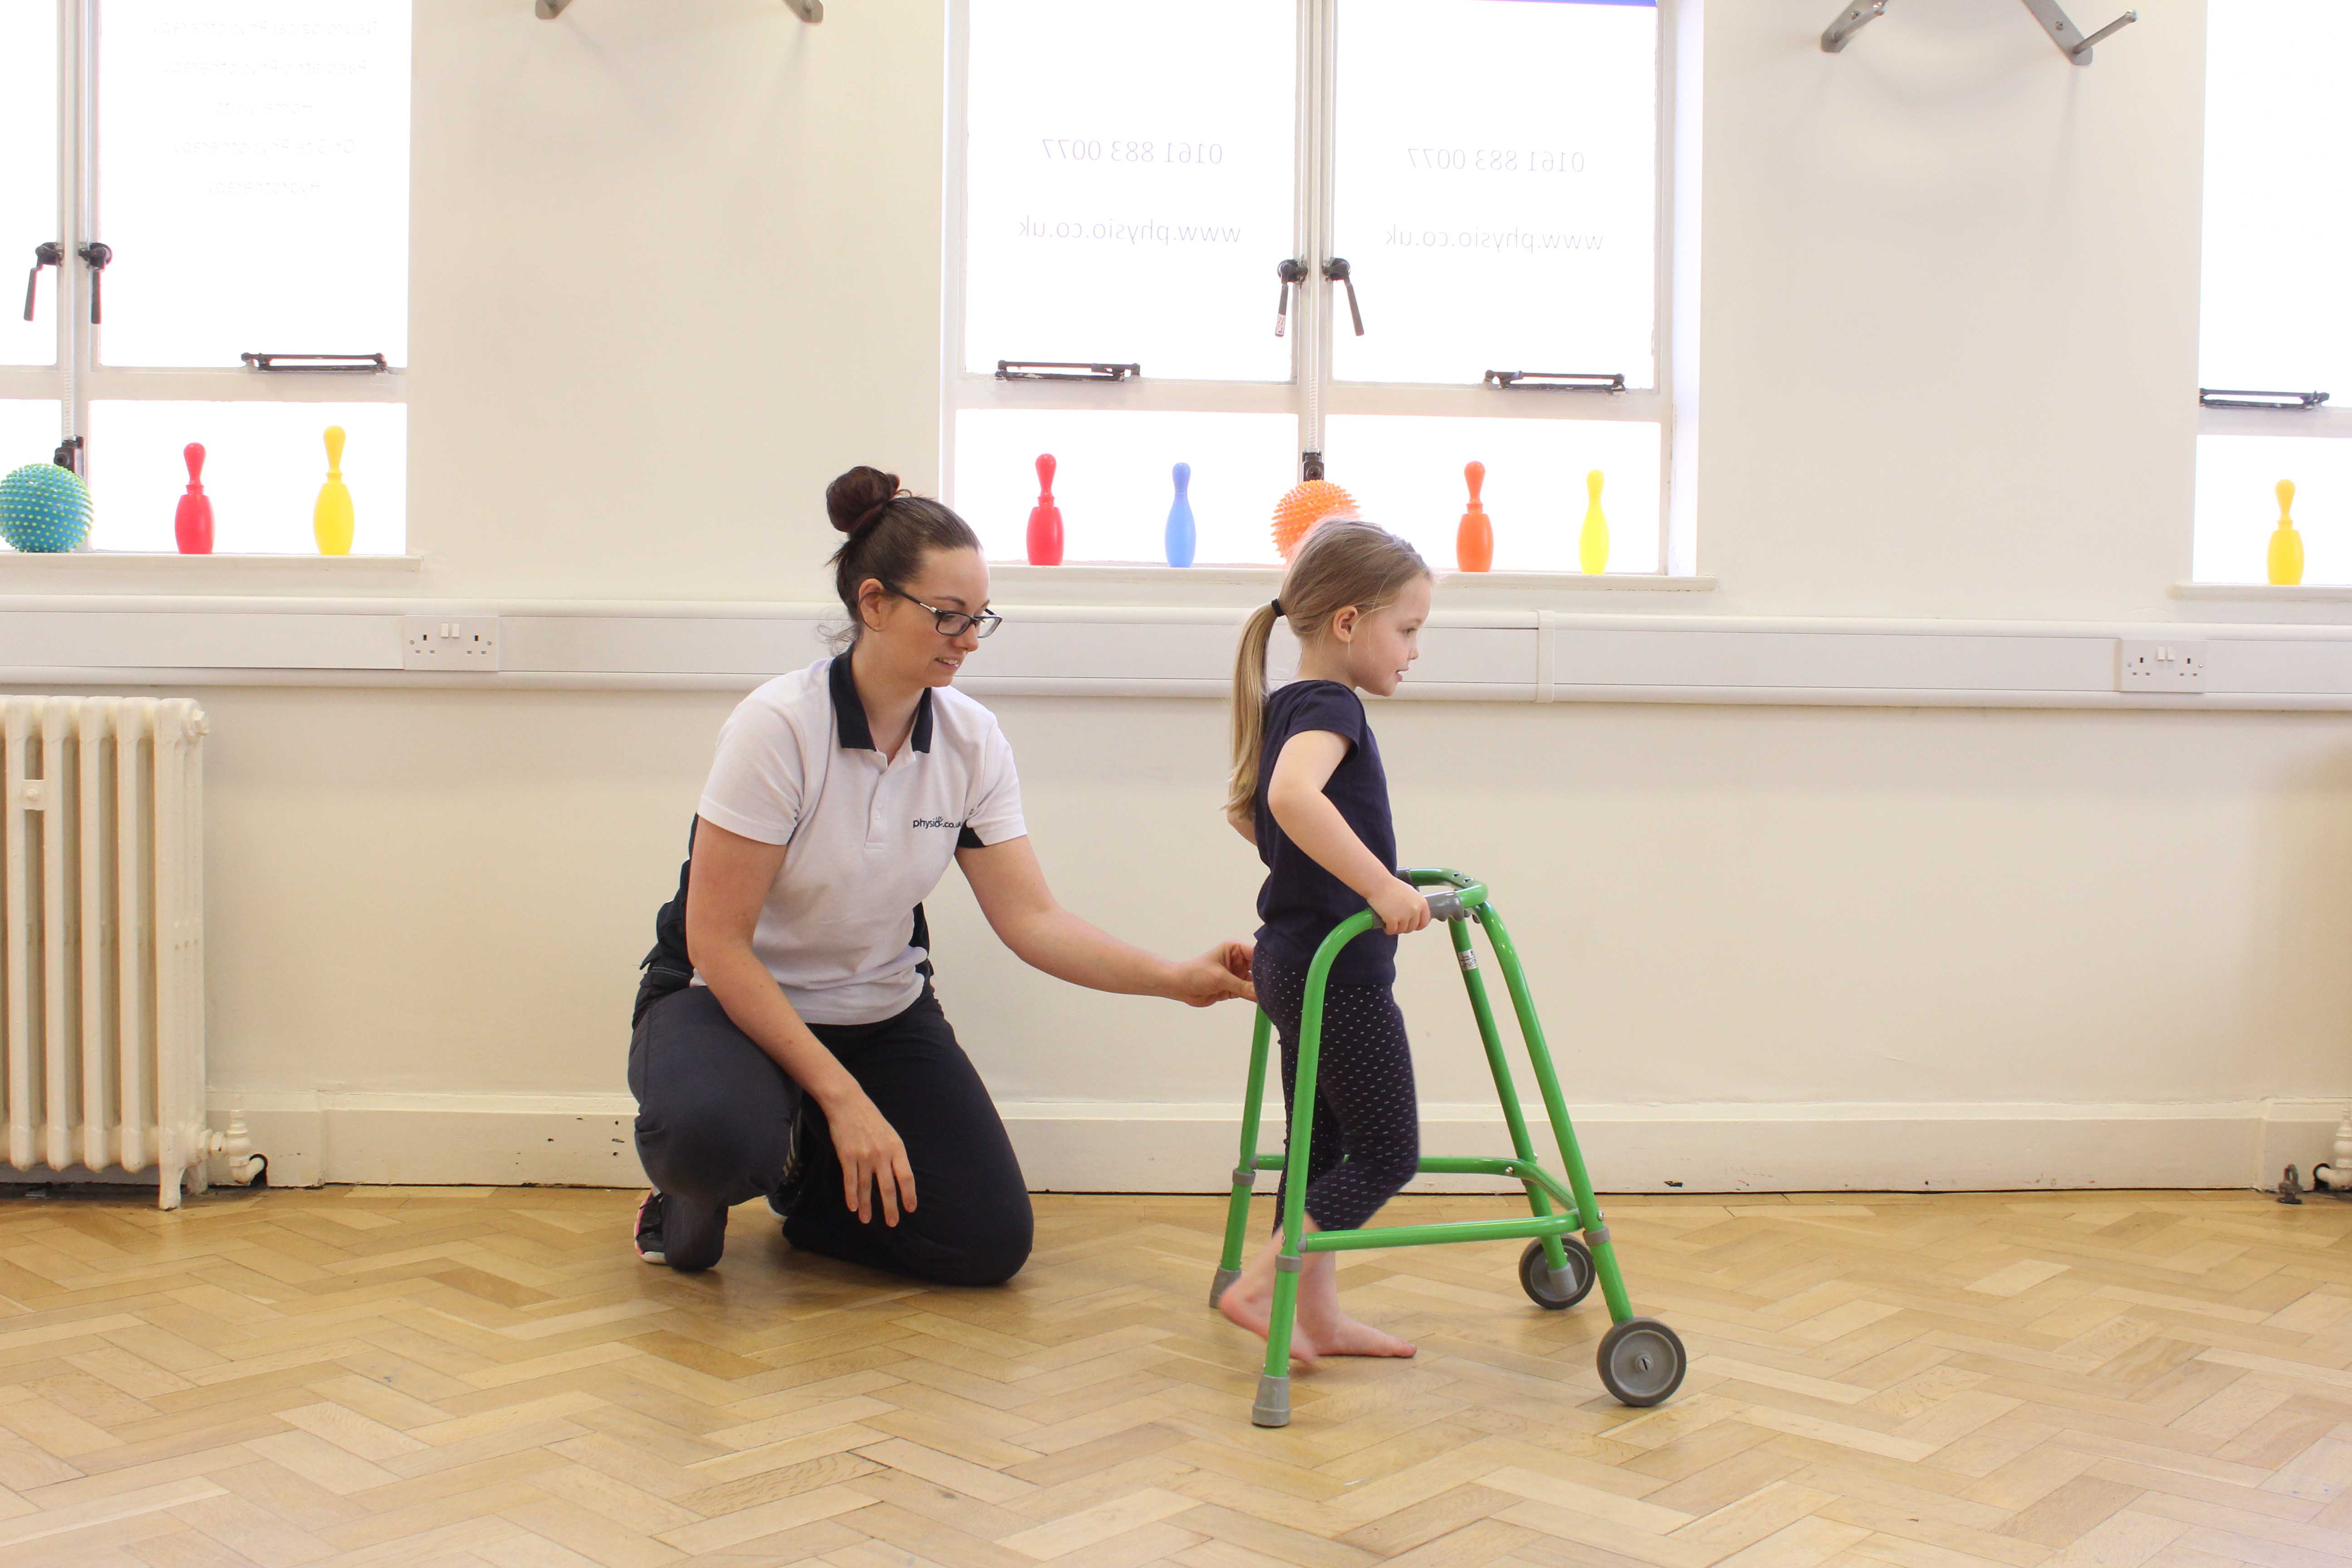 Mobility exercises supported by a trunk orthotic and wheeled walking frame